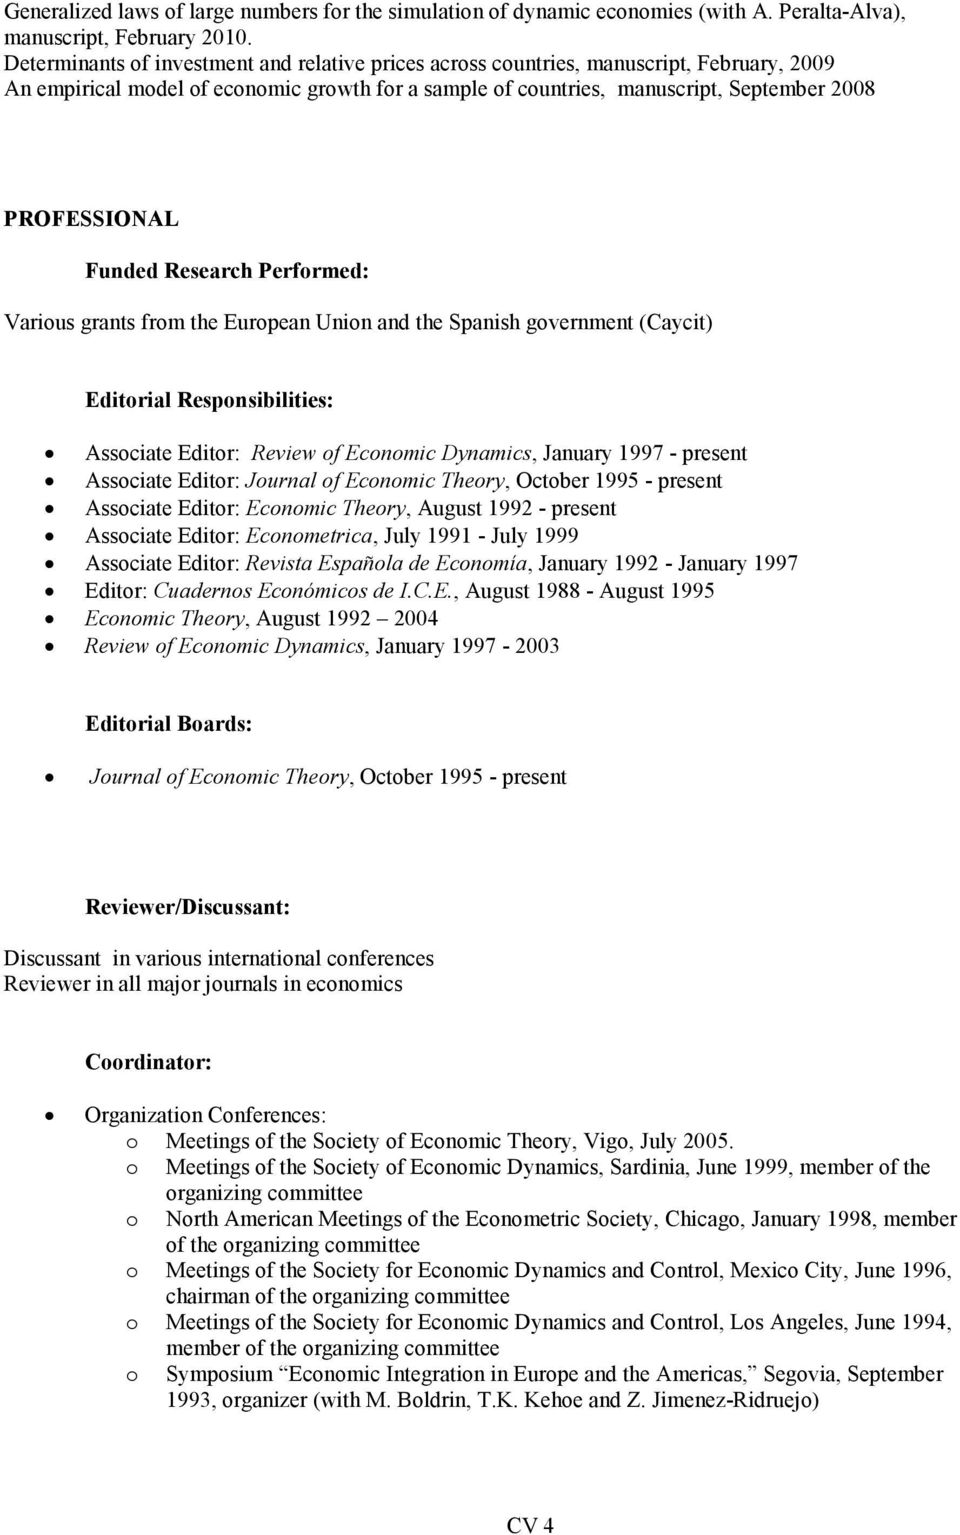 Funded Research Performed: Various grants from the European Union and the Spanish government (Caycit) Editorial Responsibilities: Associate Editor: Review of Economic Dynamics, January 1997 - present